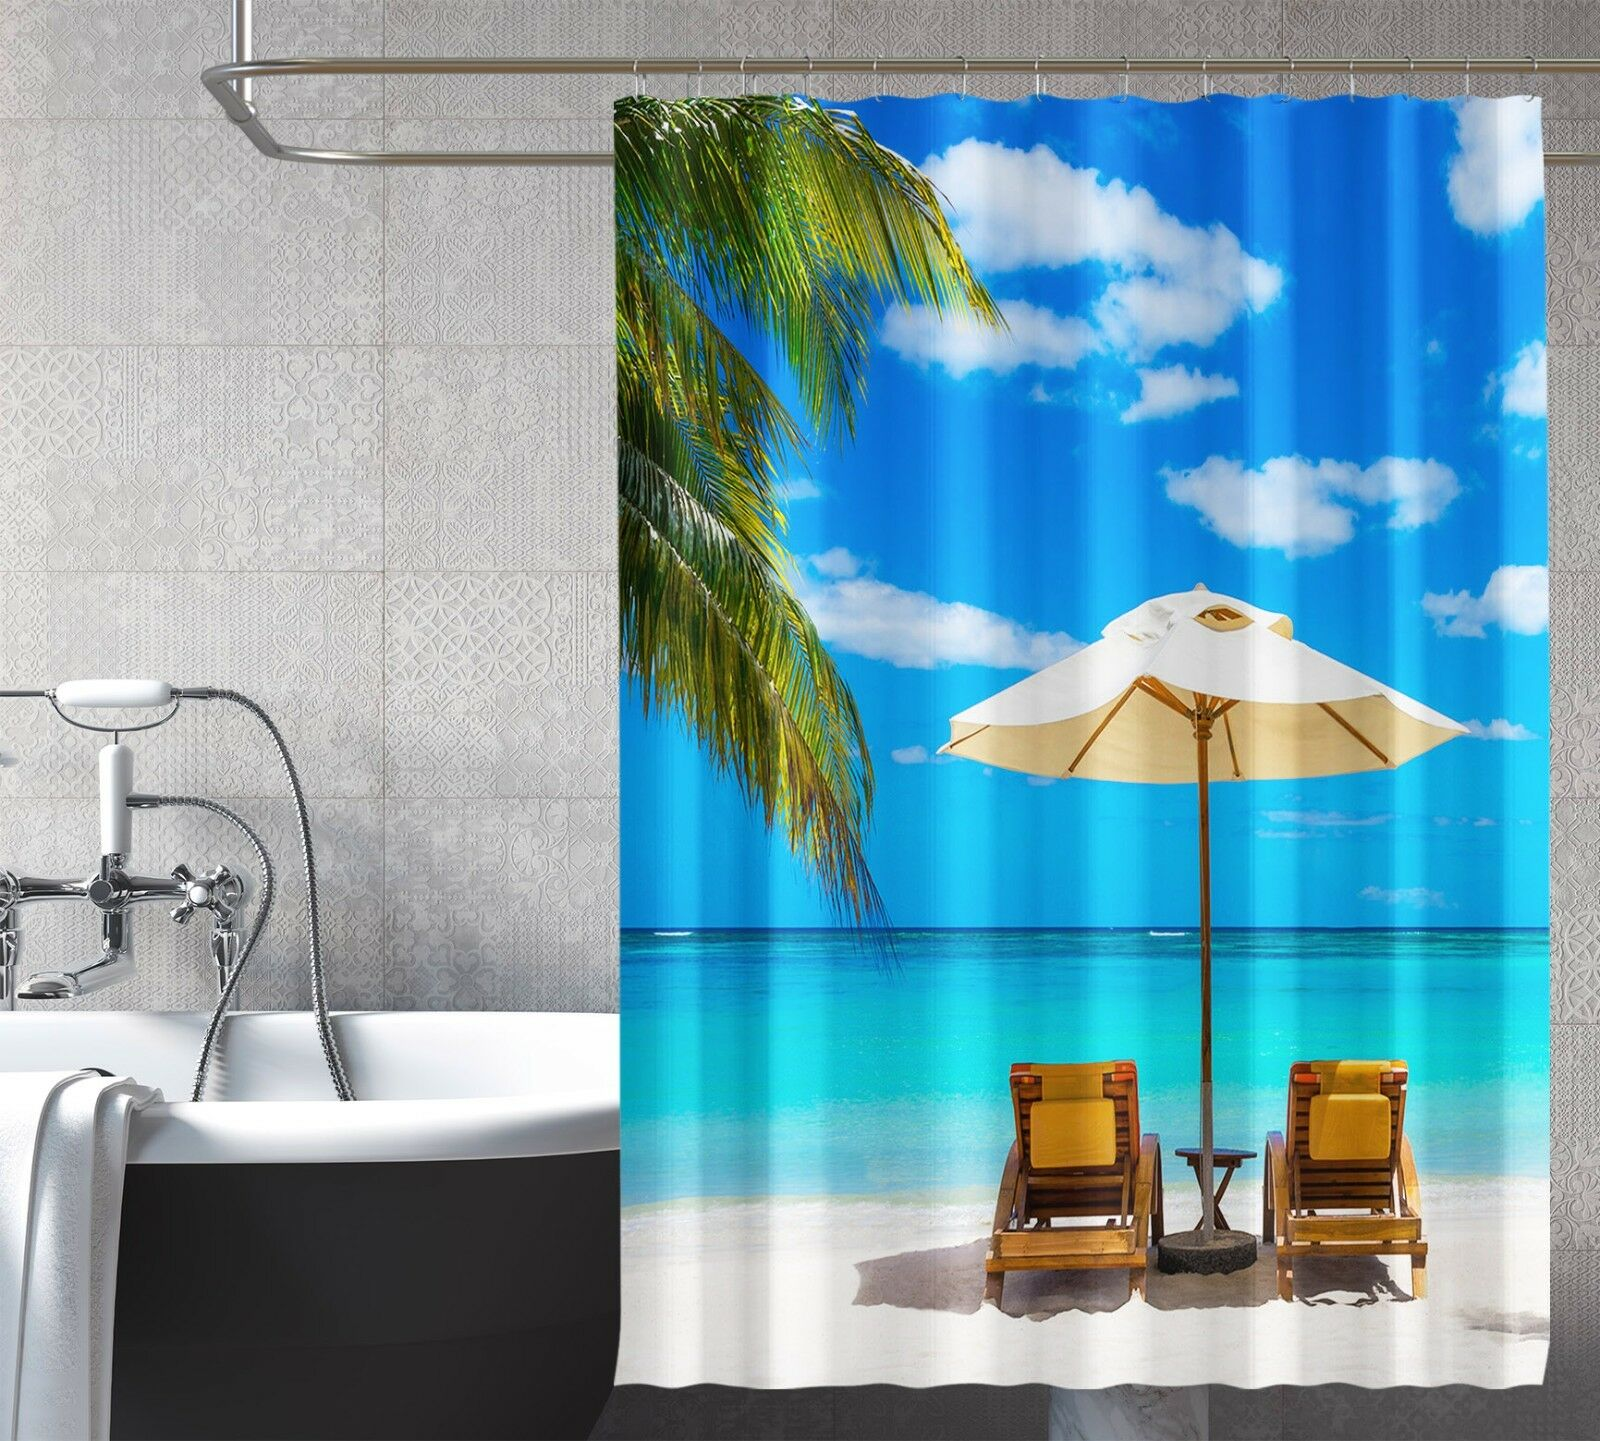 3D Beach Vacation 1 Shower Curtain Waterproof Fiber Bathroom Home Windows Toilet